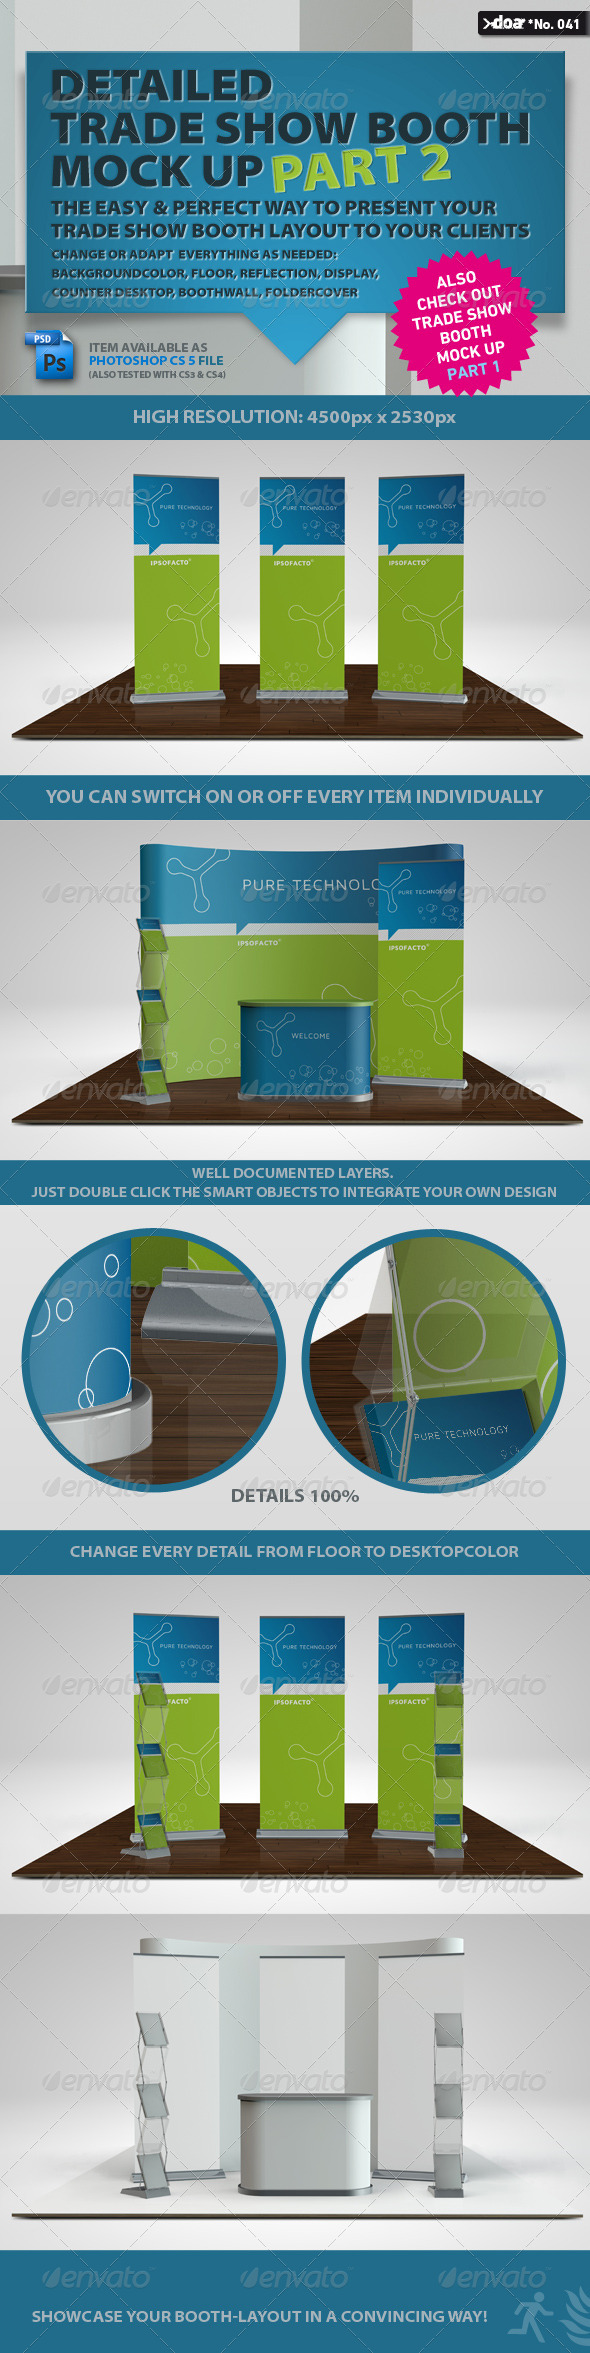 Trade Show Booth Mock Up PART 2 - Miscellaneous Displays